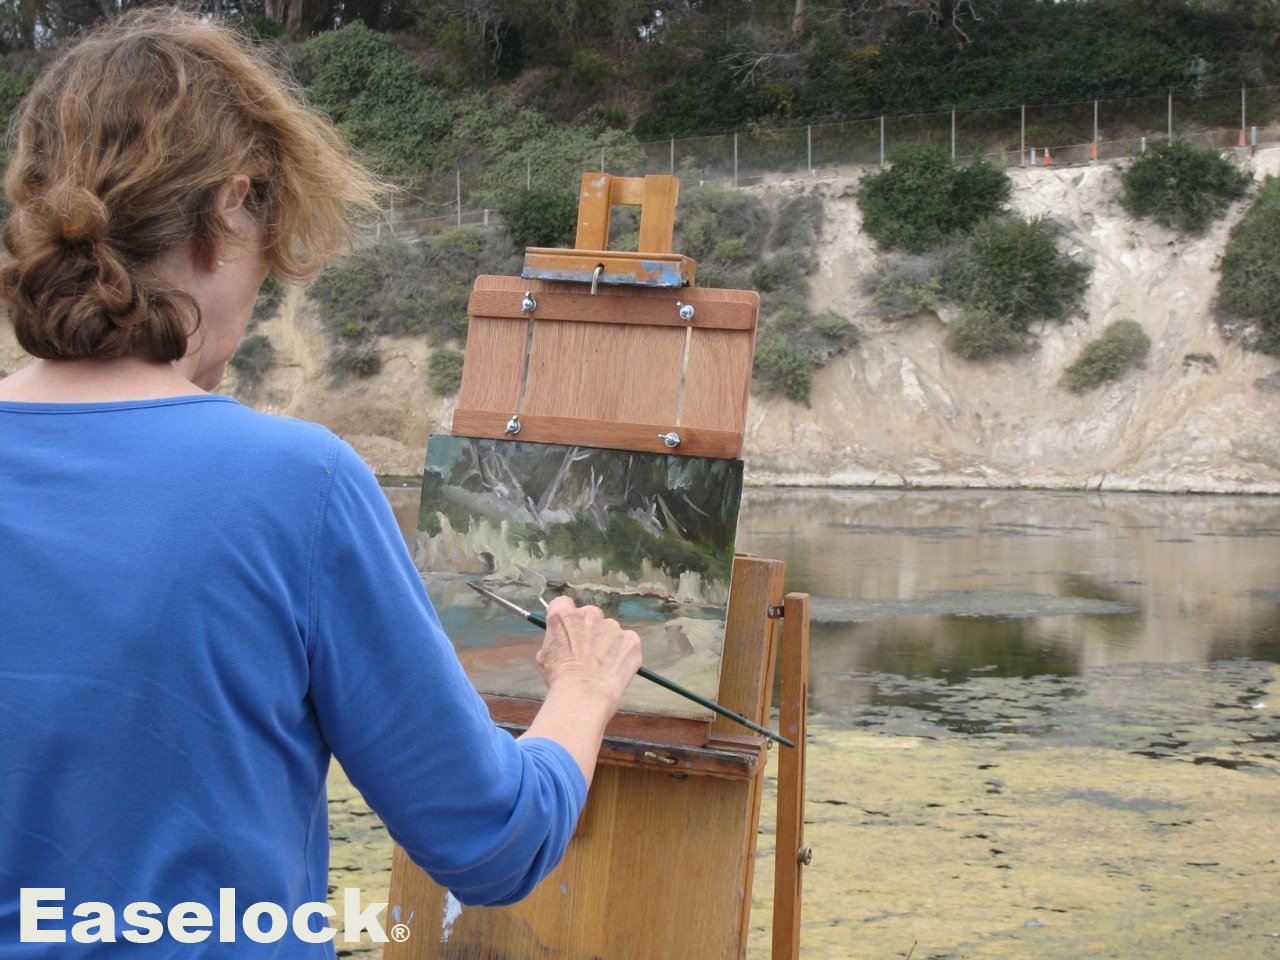 plein air panel, small canvas adapter, easel adapter, Easelock, artist tools